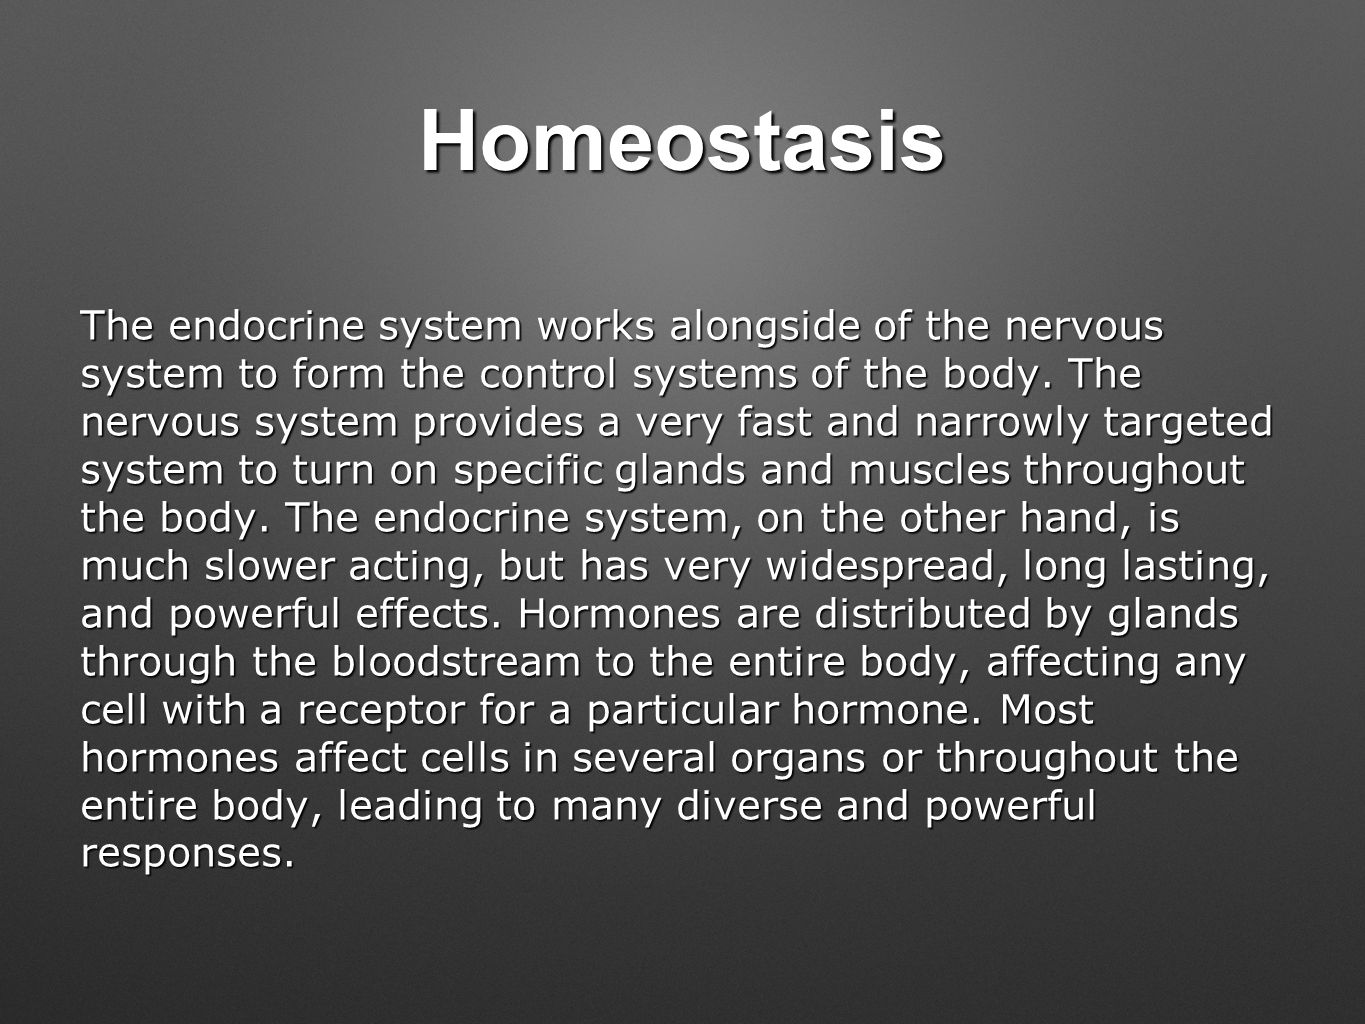 Homeostasis The endocrine system works alongside of the nervous system to form the control systems of the body.